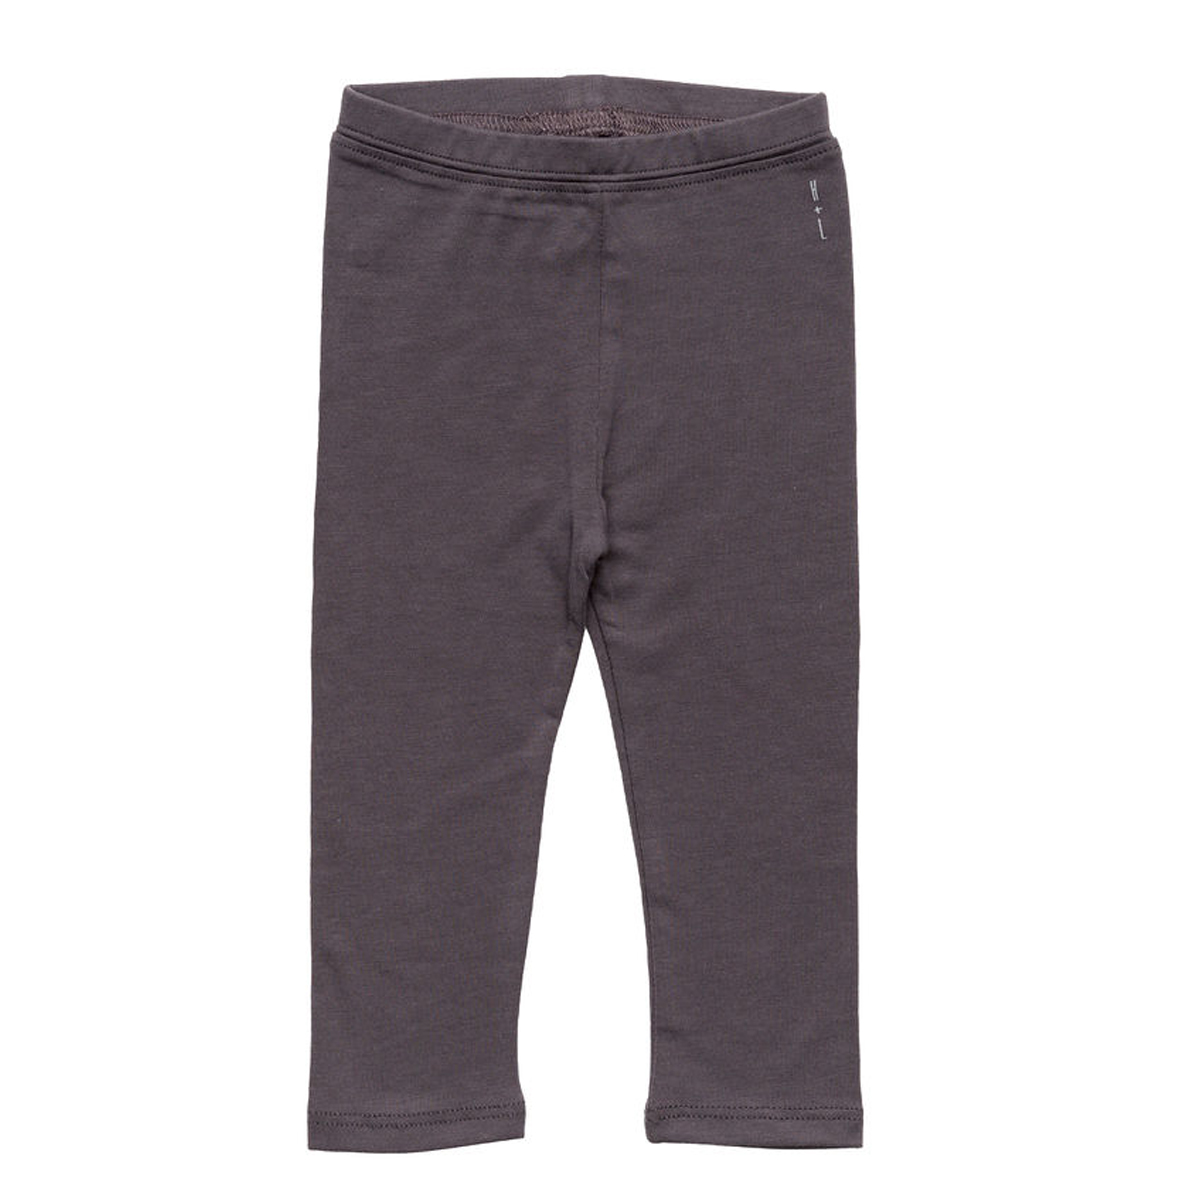 Hart + Land Legging in Dark Grey